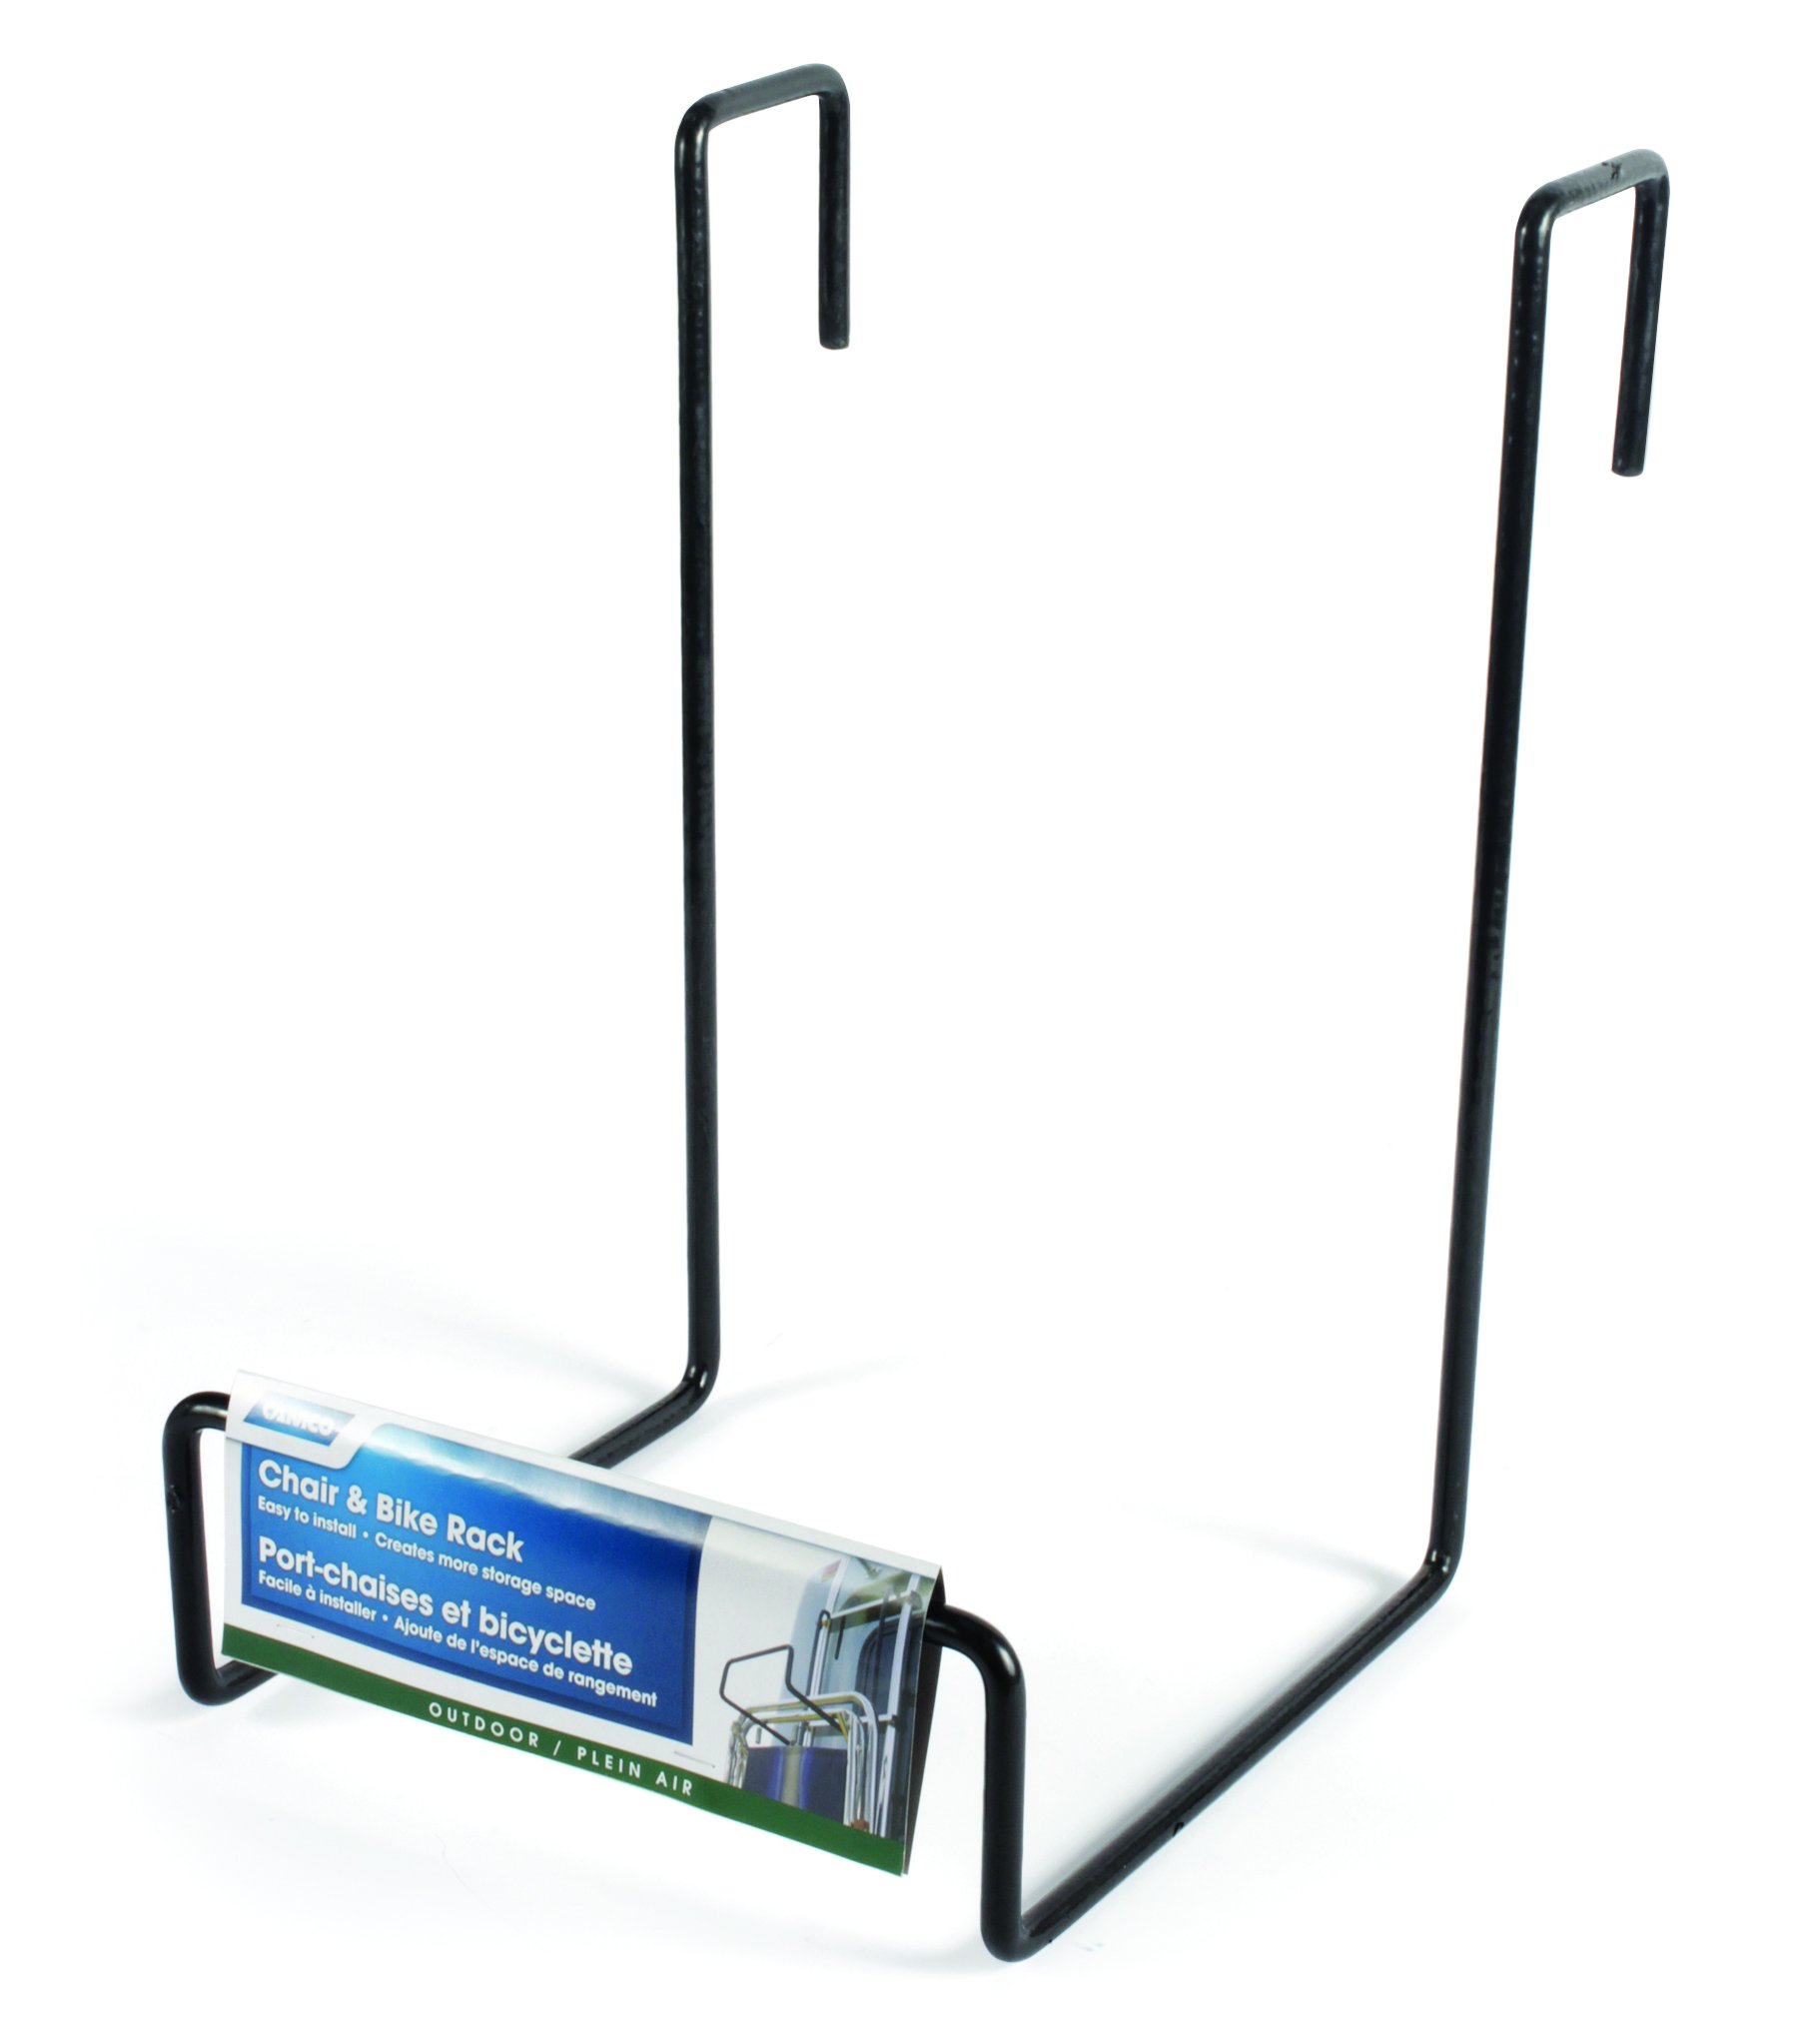 Camco Heavy Duty Chair Rack  Hook On RV Ladder To Support Folding Chairs,  Picnic Chairs, And Beach Chairs During Travel  Black (51490)   51490 U003c  Cleaning, ...